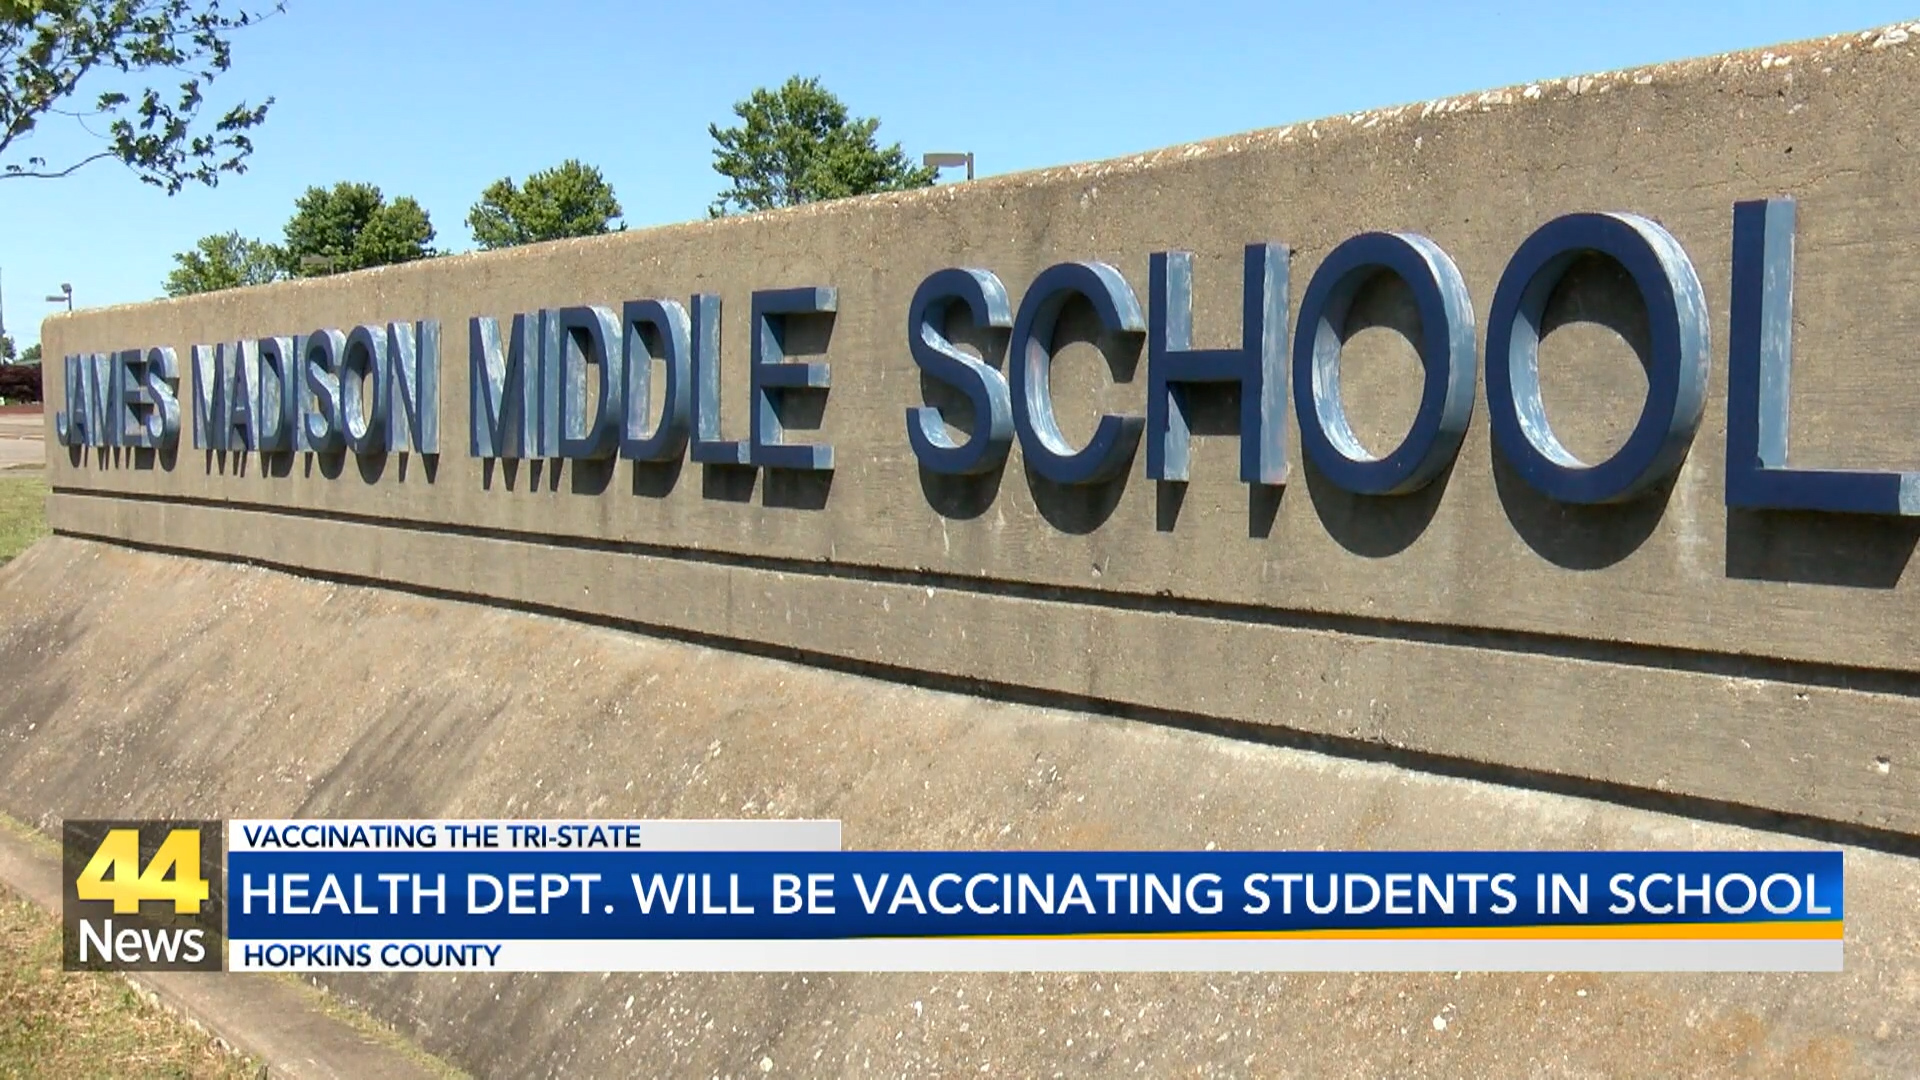 Image for Vaccine Available for Hopkins County Students